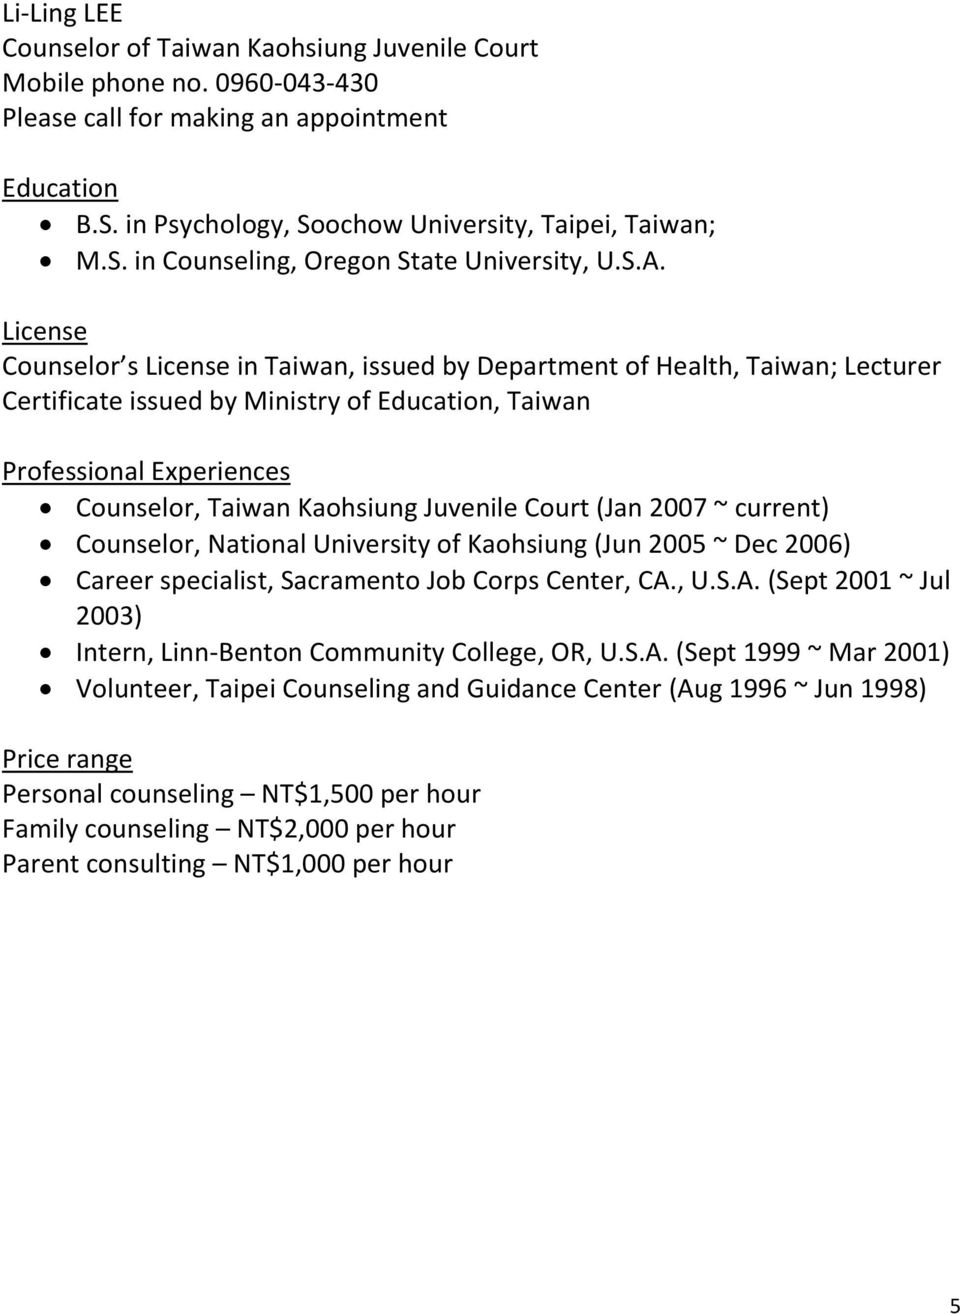 National University of Kaohsiung (Jun 2005 ~ Dec 2006) Career specialist, Sacramento Job Corps Center, CA.